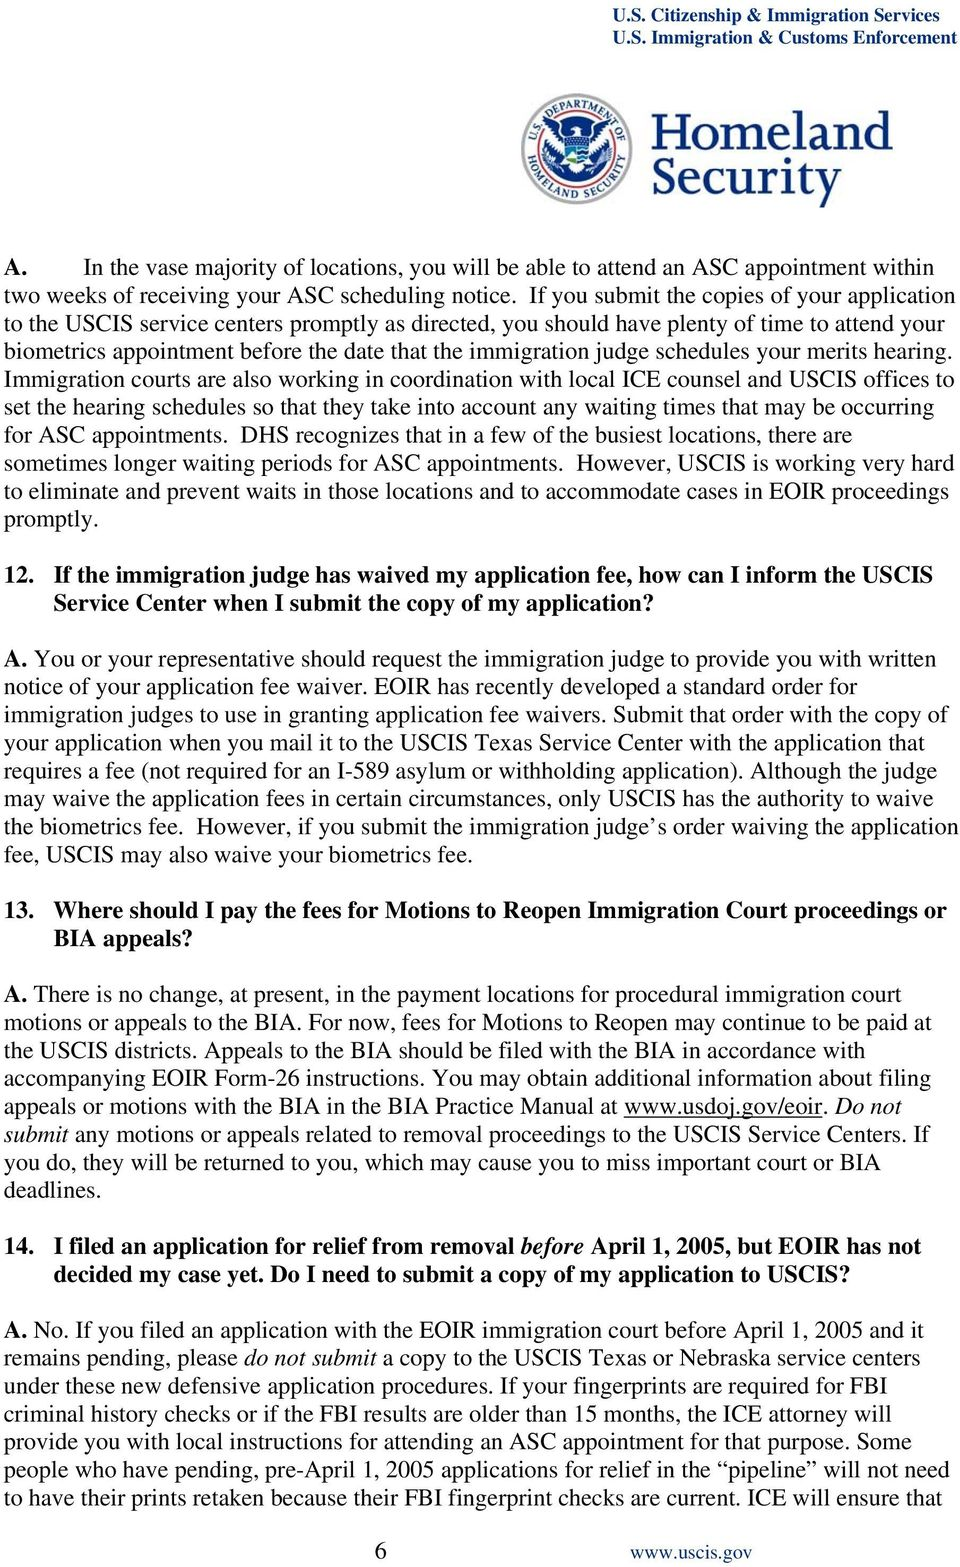 immigration judge schedules your merits hearing.